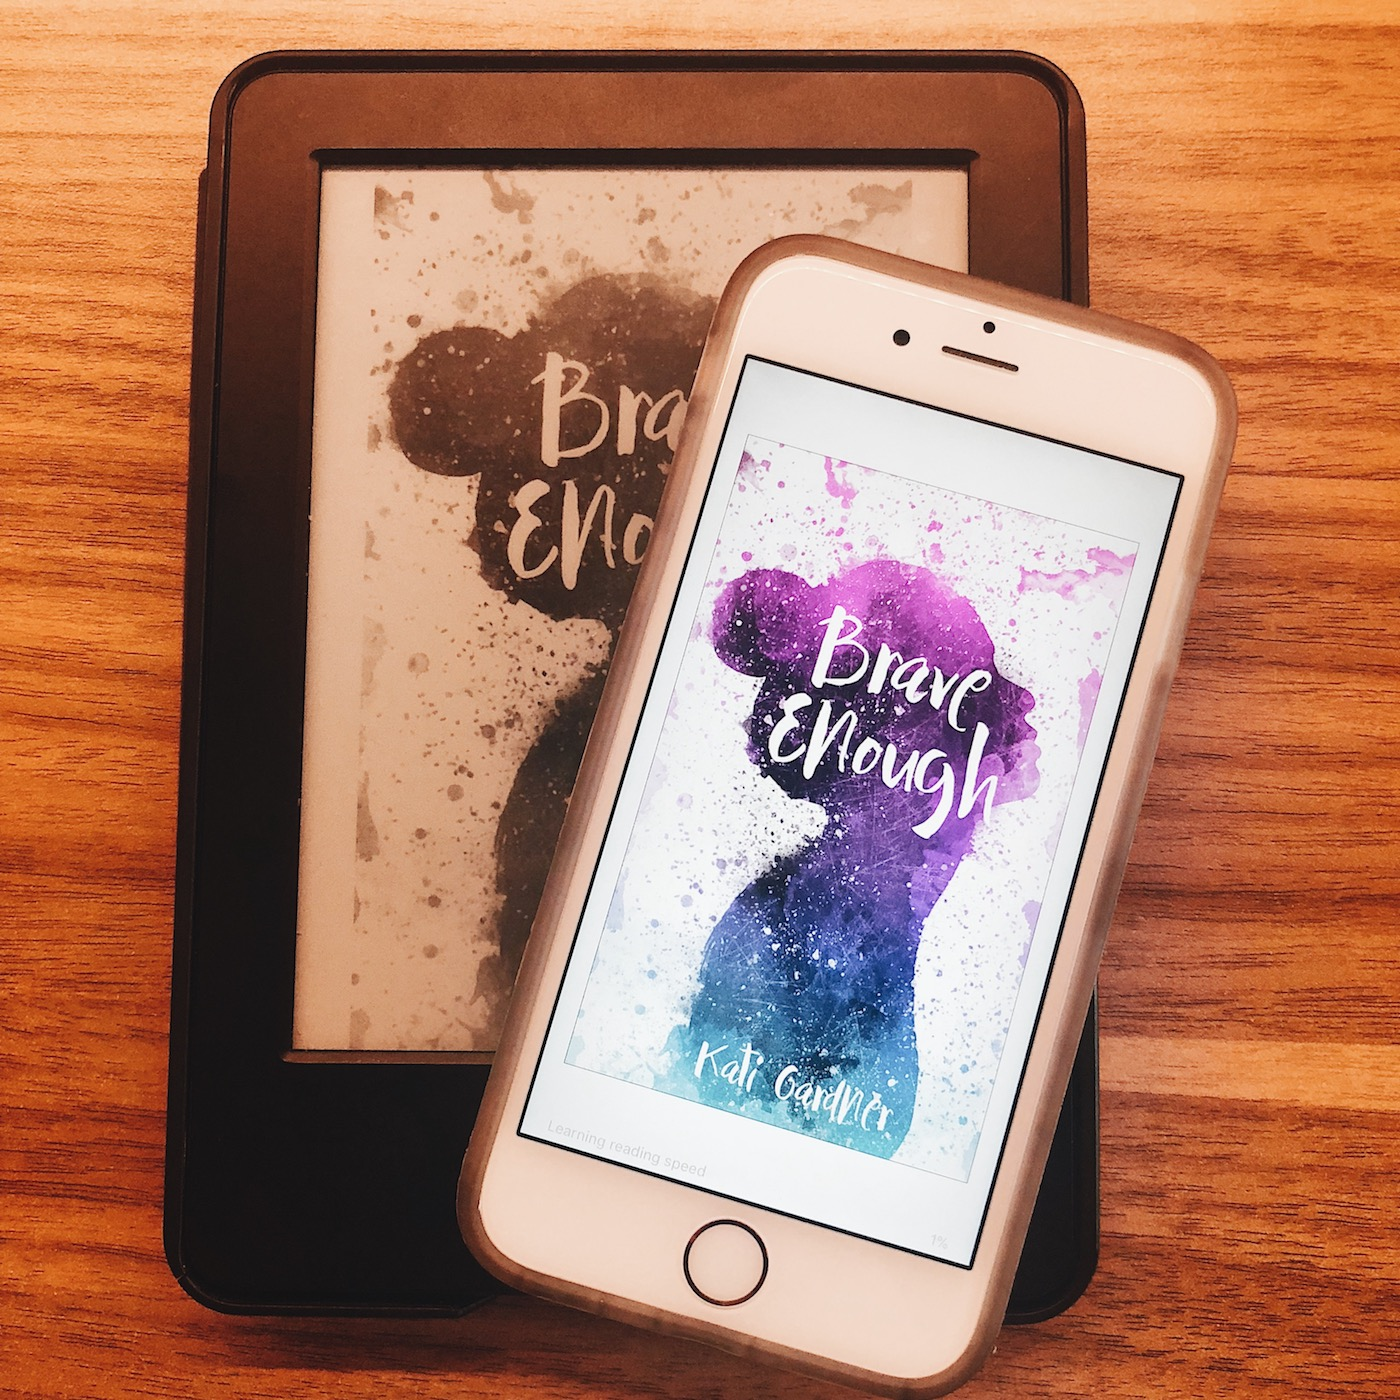 brave-enough-kati-gardner-book-review-the-wednesday-issue